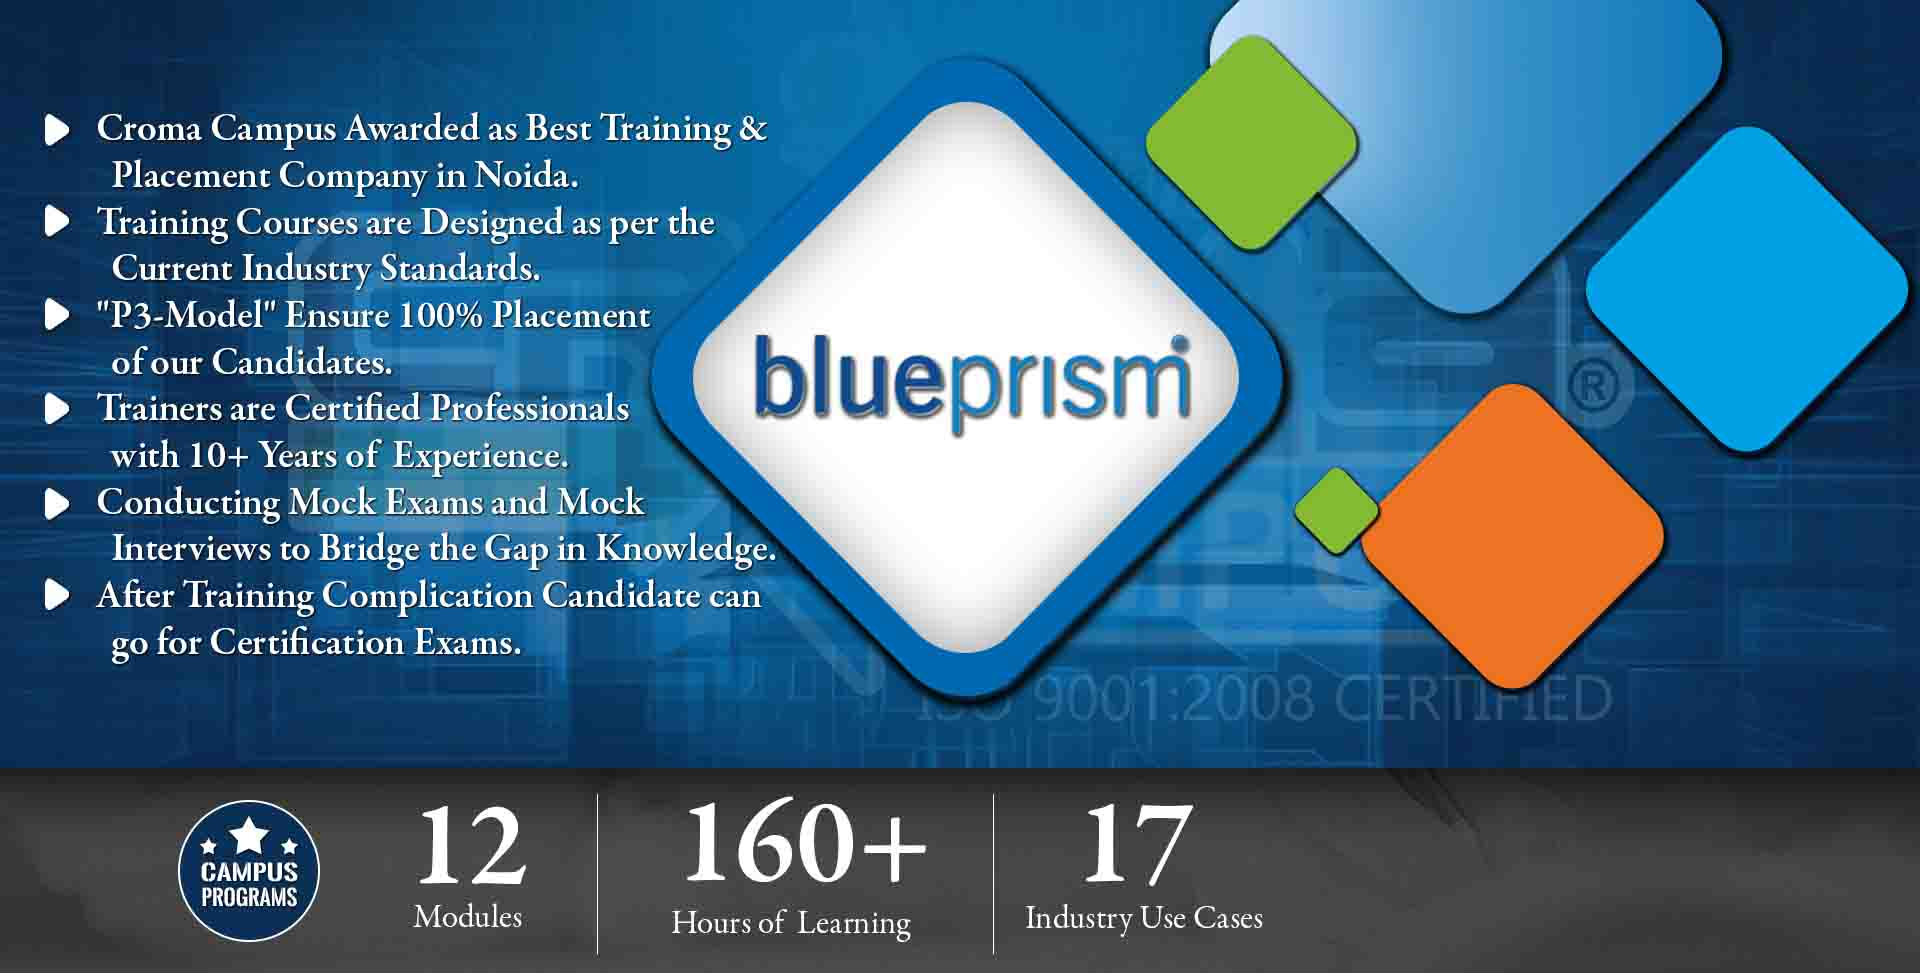 Blue Prism Training in Delhi NCR- Croma Campus